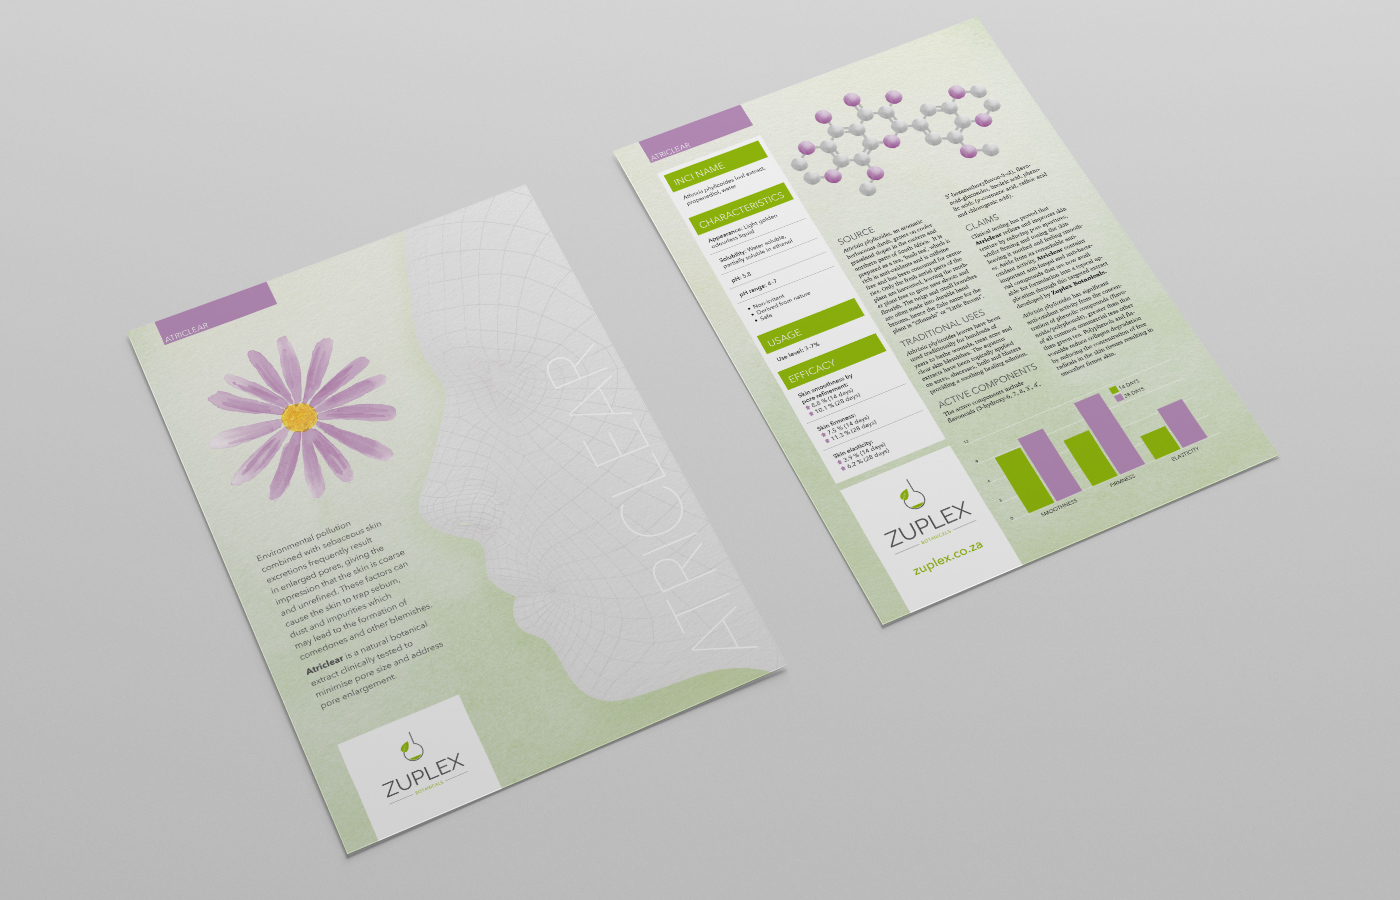 Zuplex Product Leaflet Design